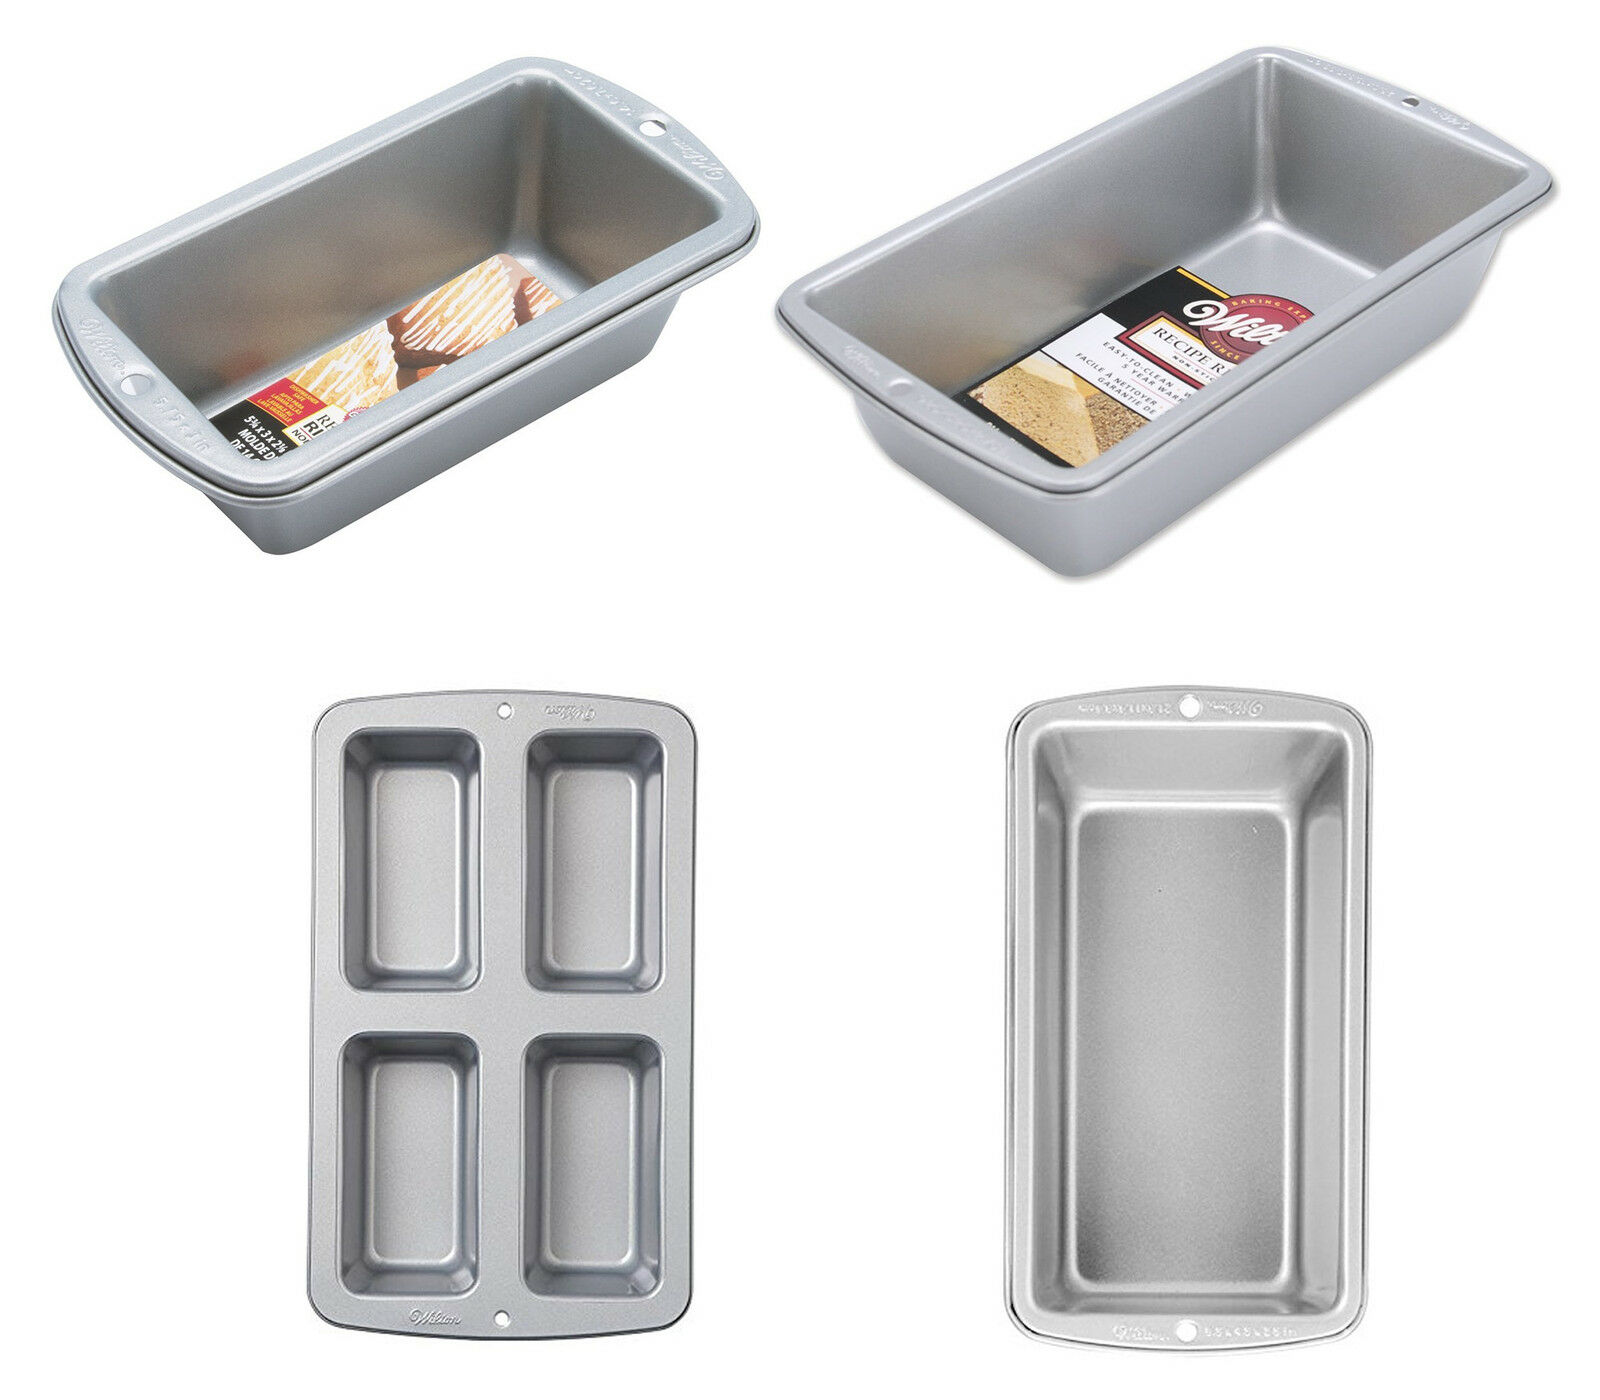 Details about Wilton Recipe Right Loaf Pans, 4 Sizes